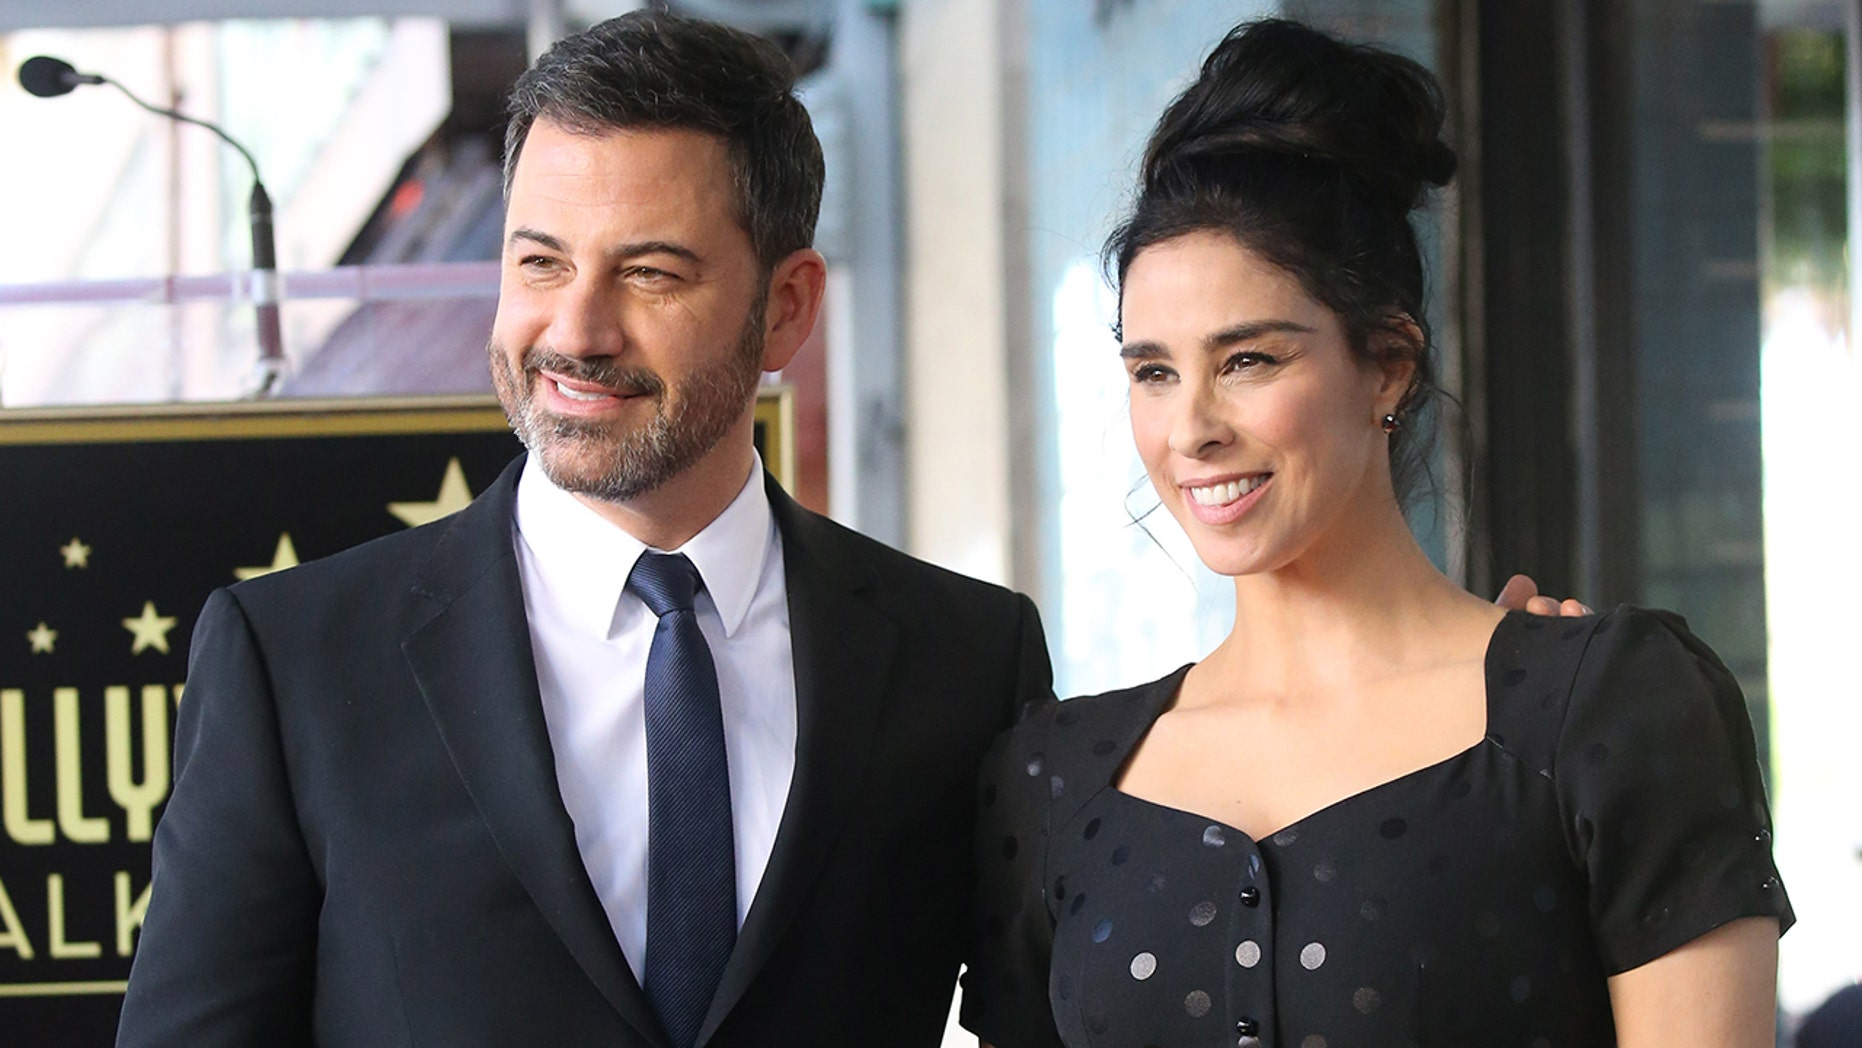 Jimmy Kimmel opened up about his ex, comedian Sarah Silverman.